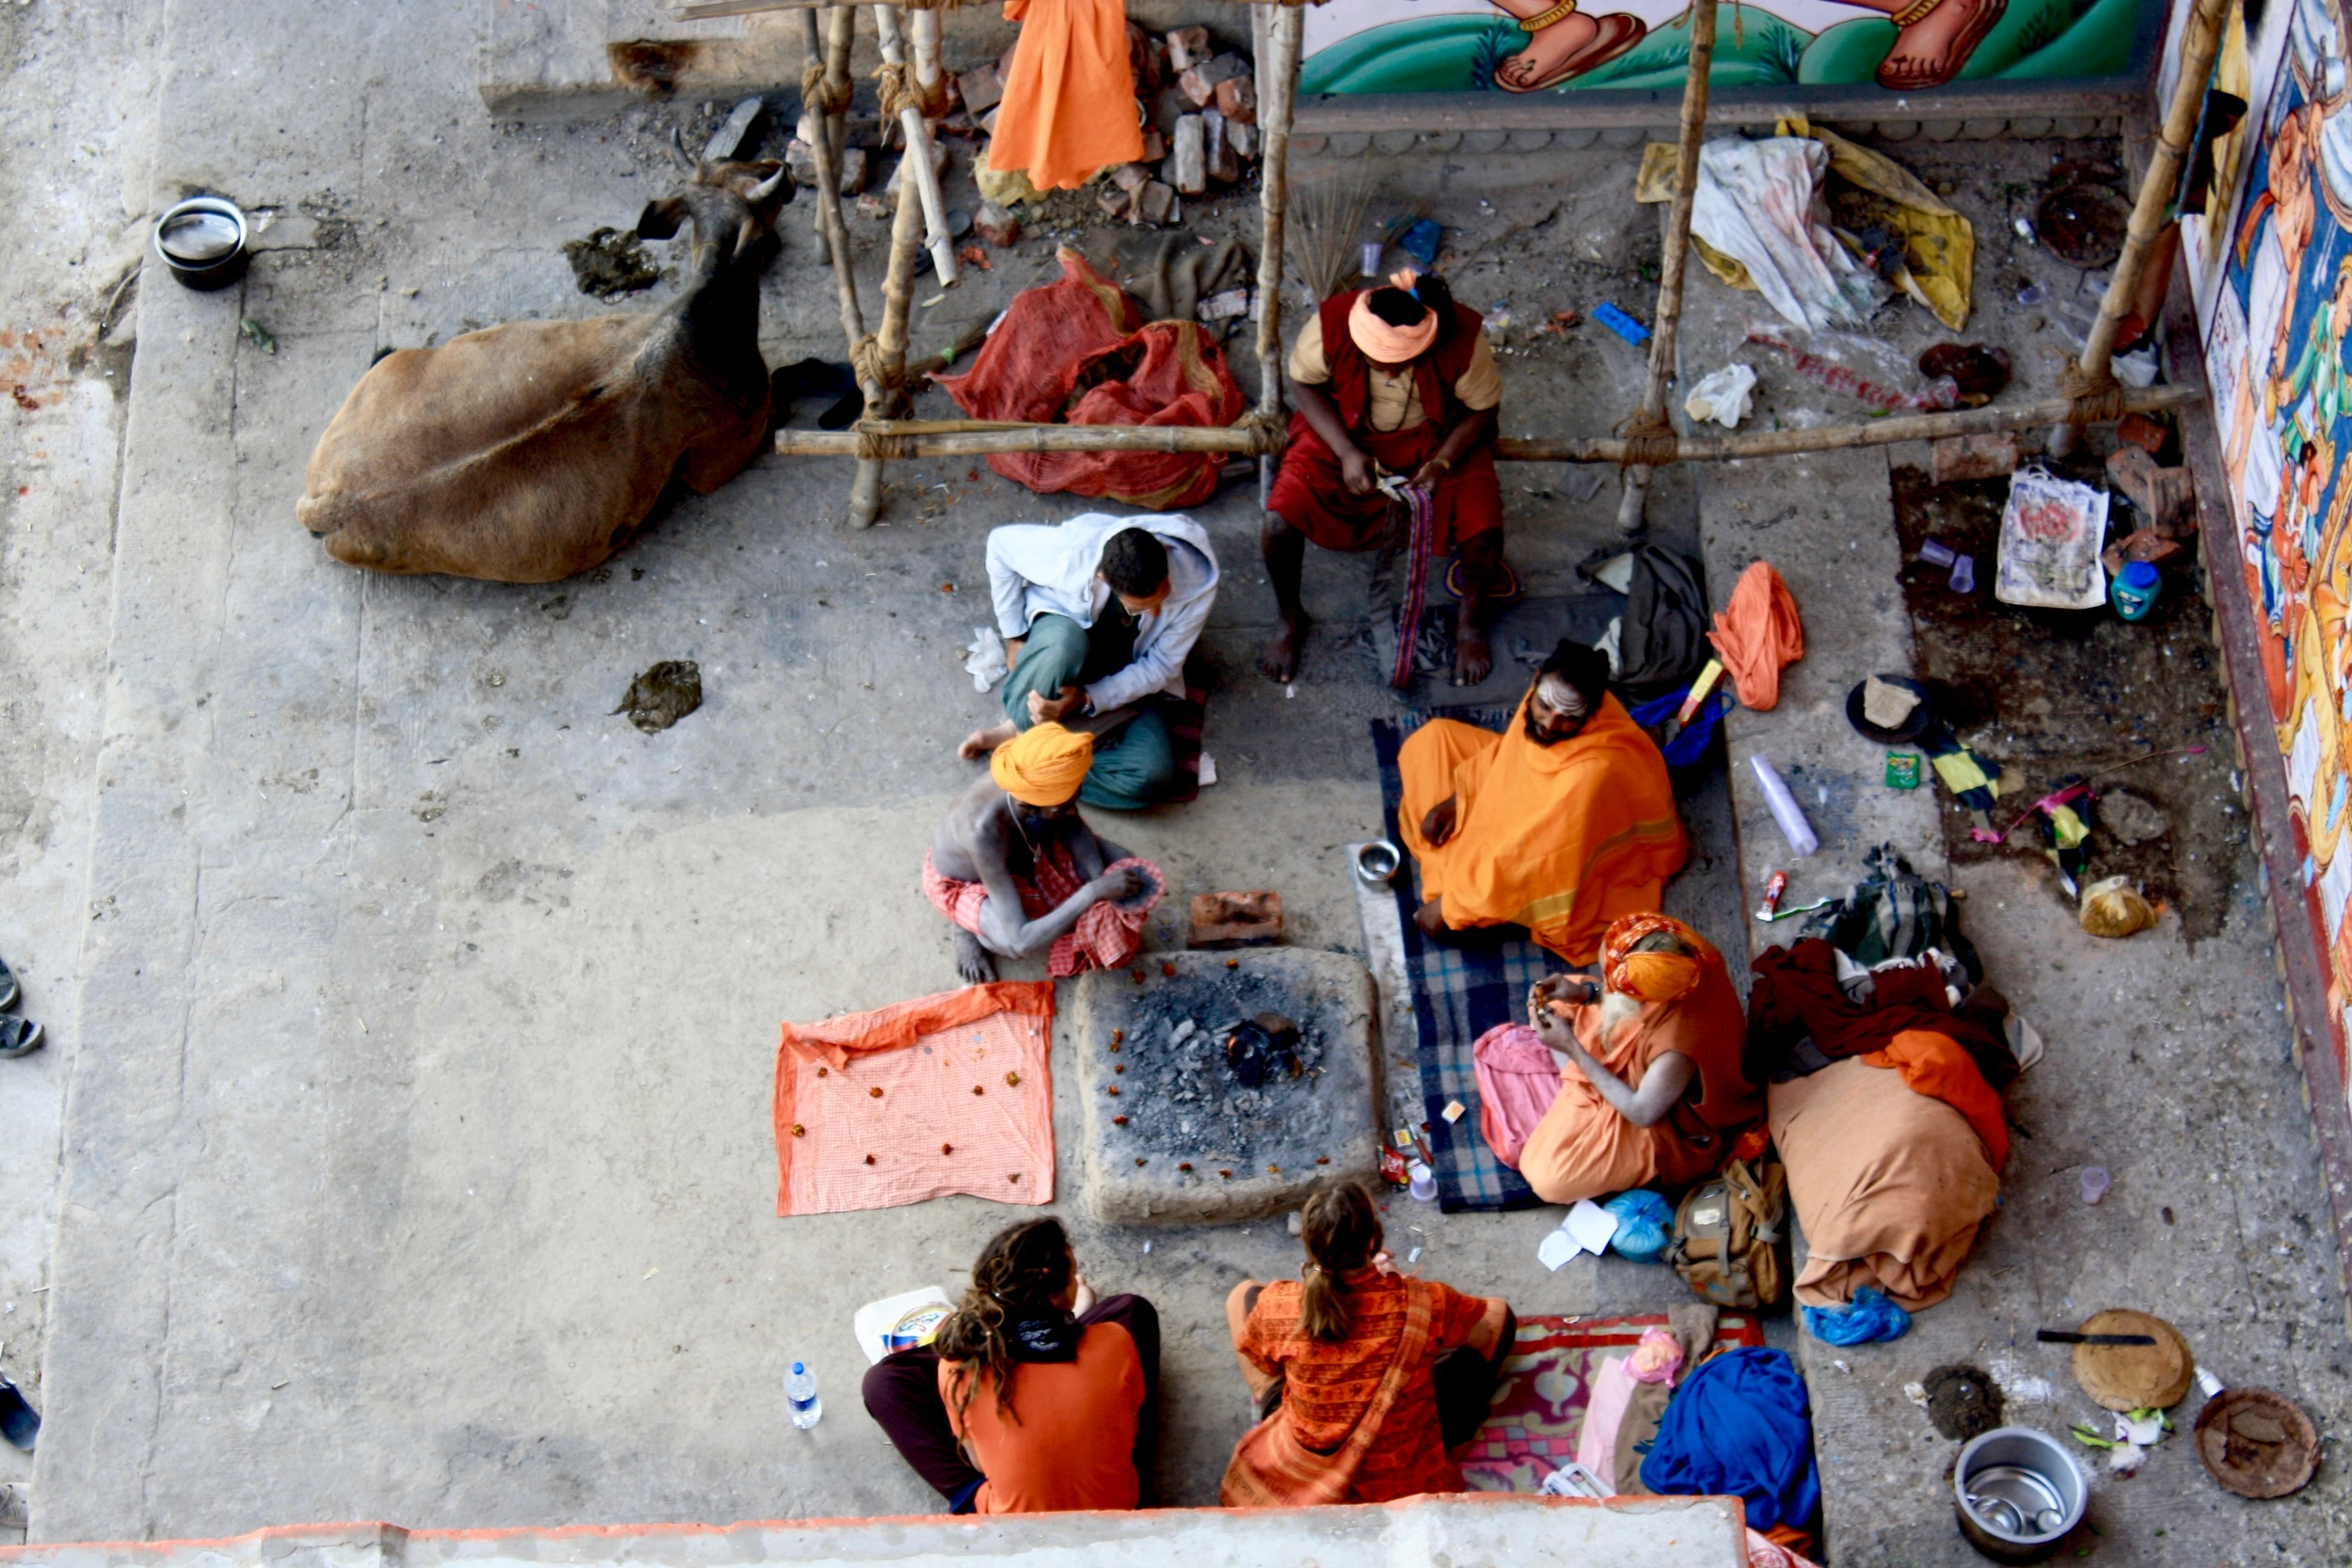 The Holy Men of the Ganges